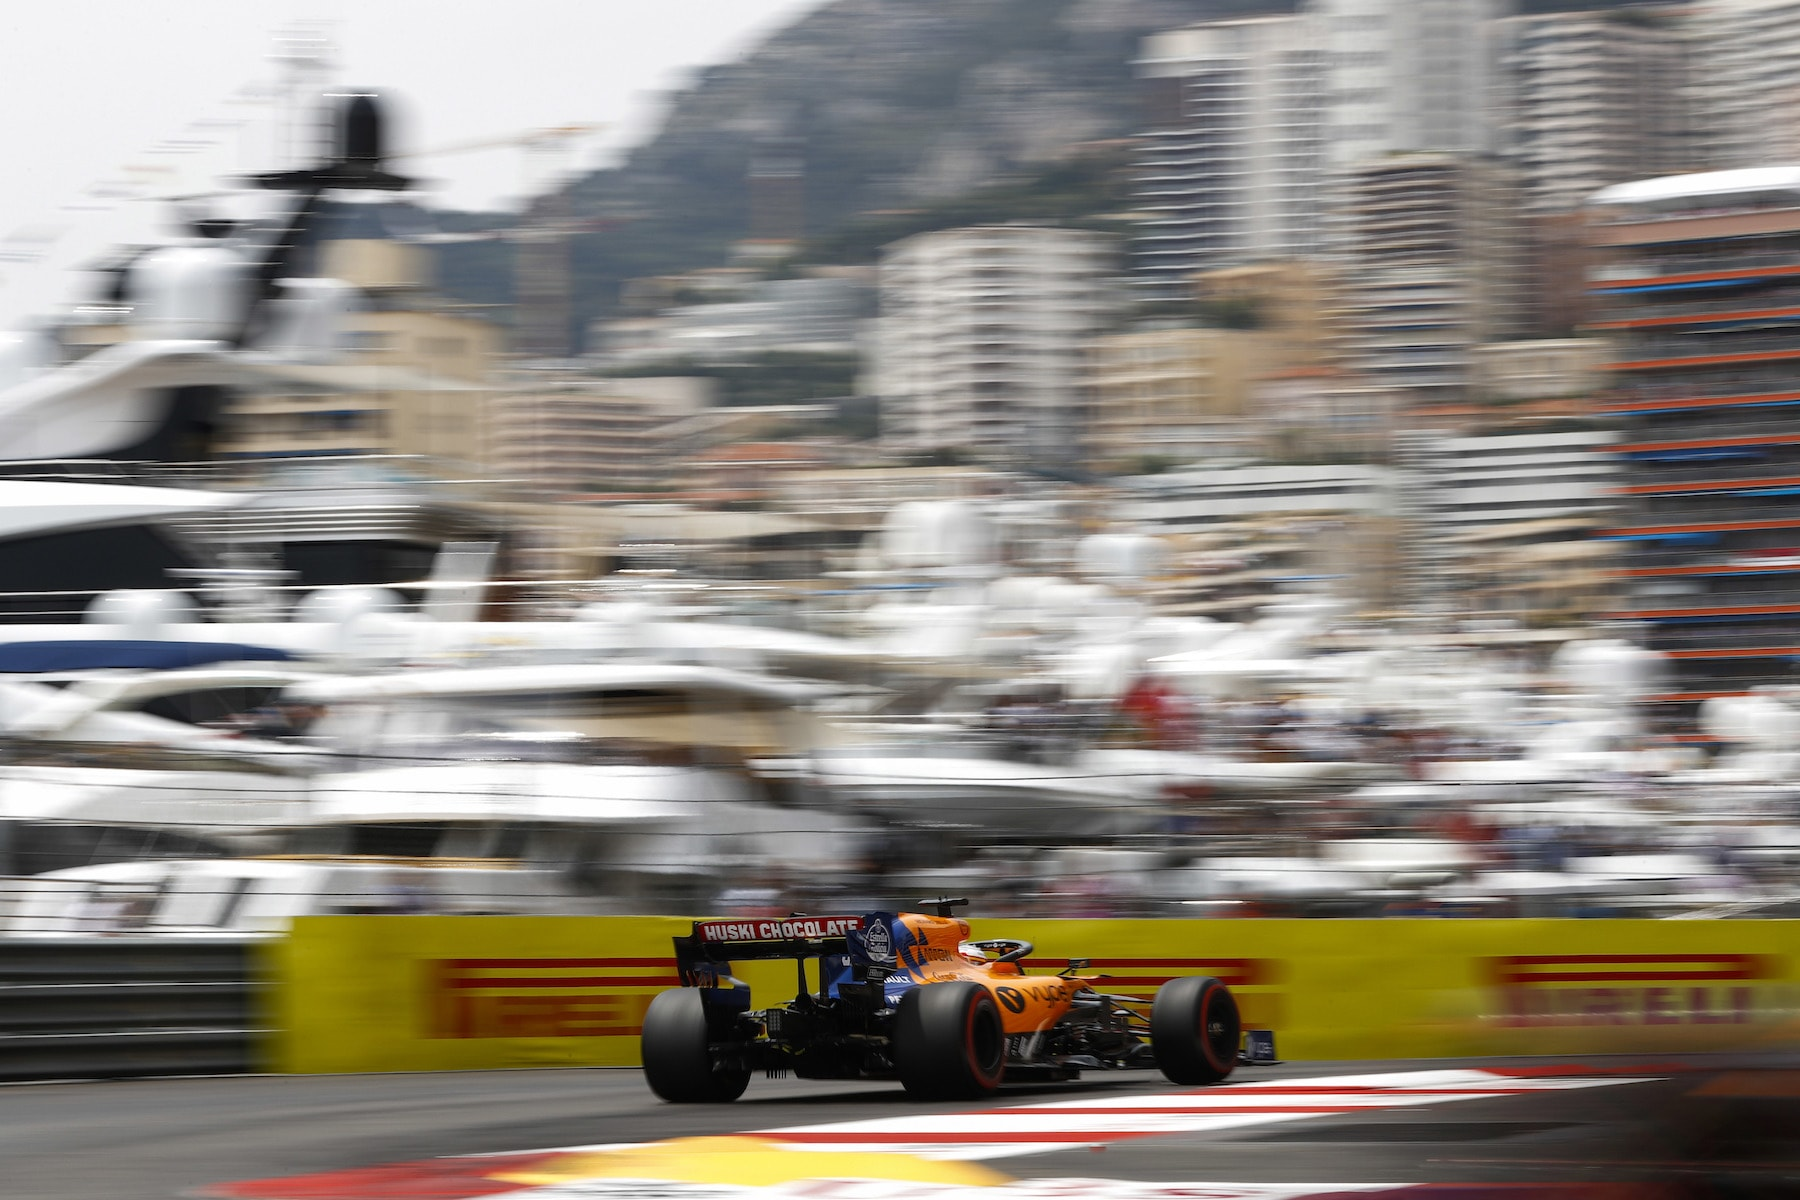 2 2019 Monaco GP SATURDAY 15.jpg